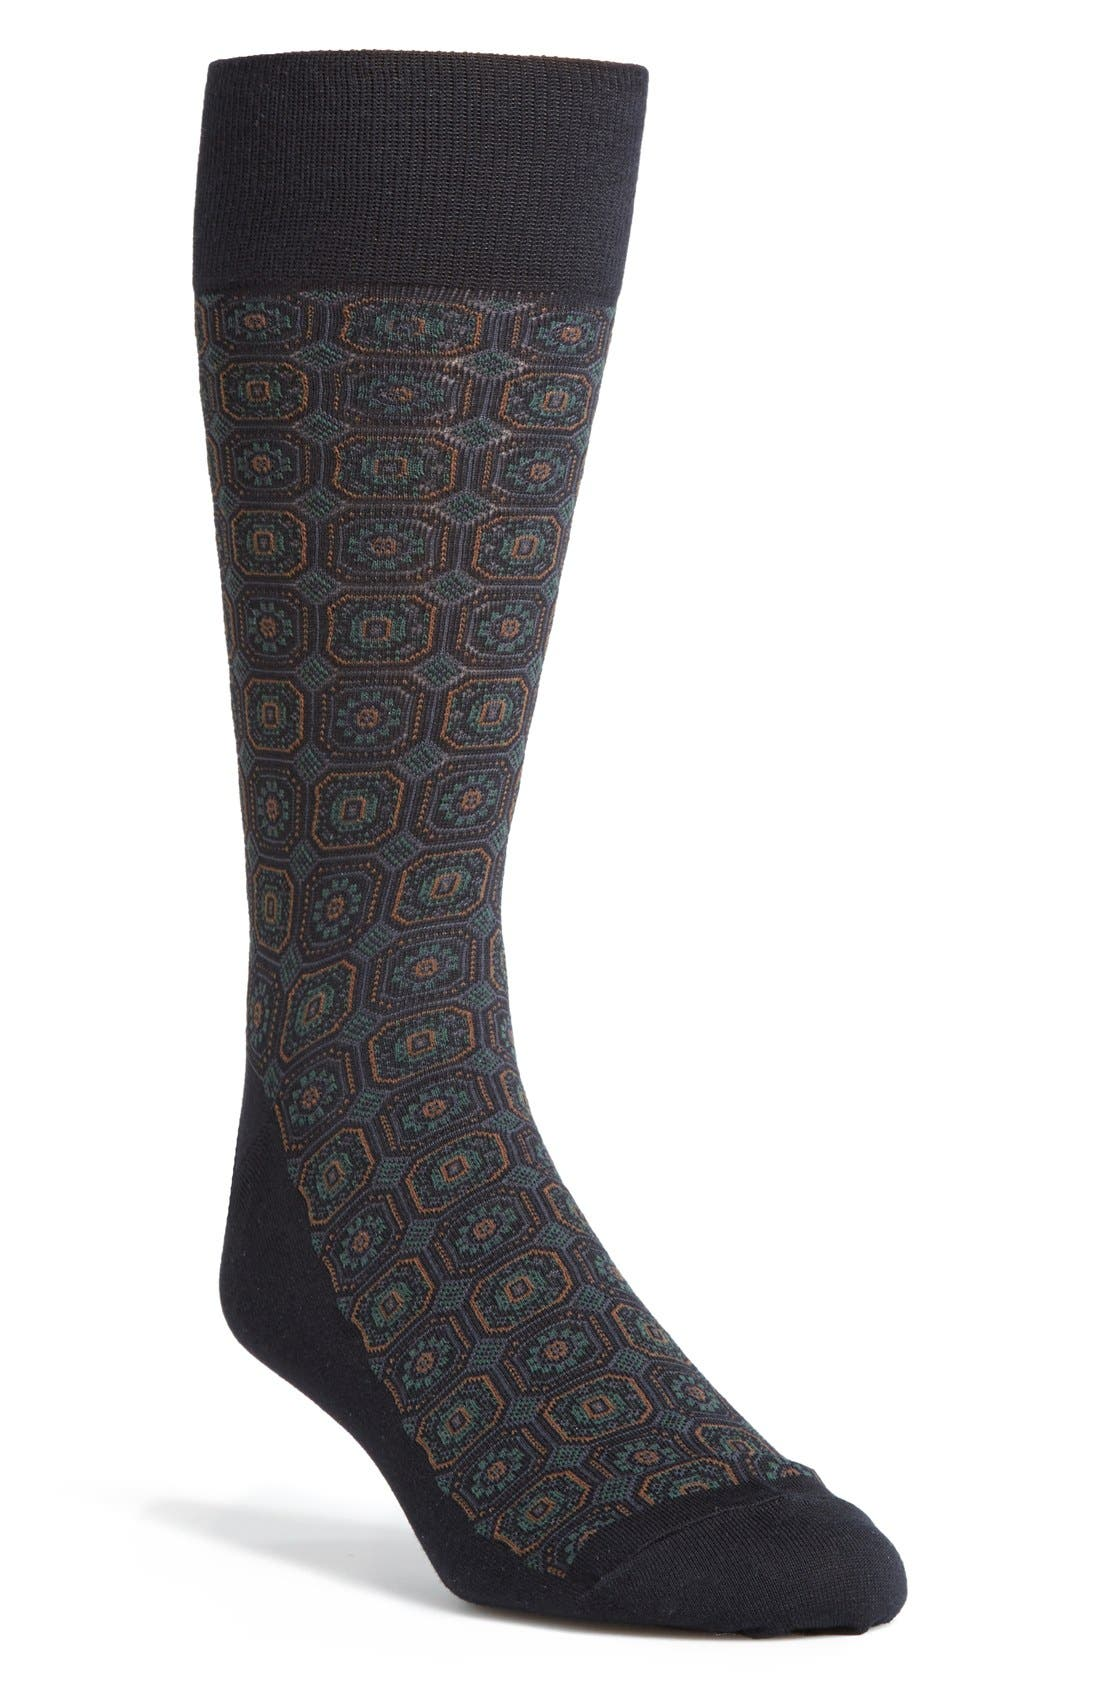 Alternate Image 1 Selected - Polo Ralph Lauren Foulard Socks